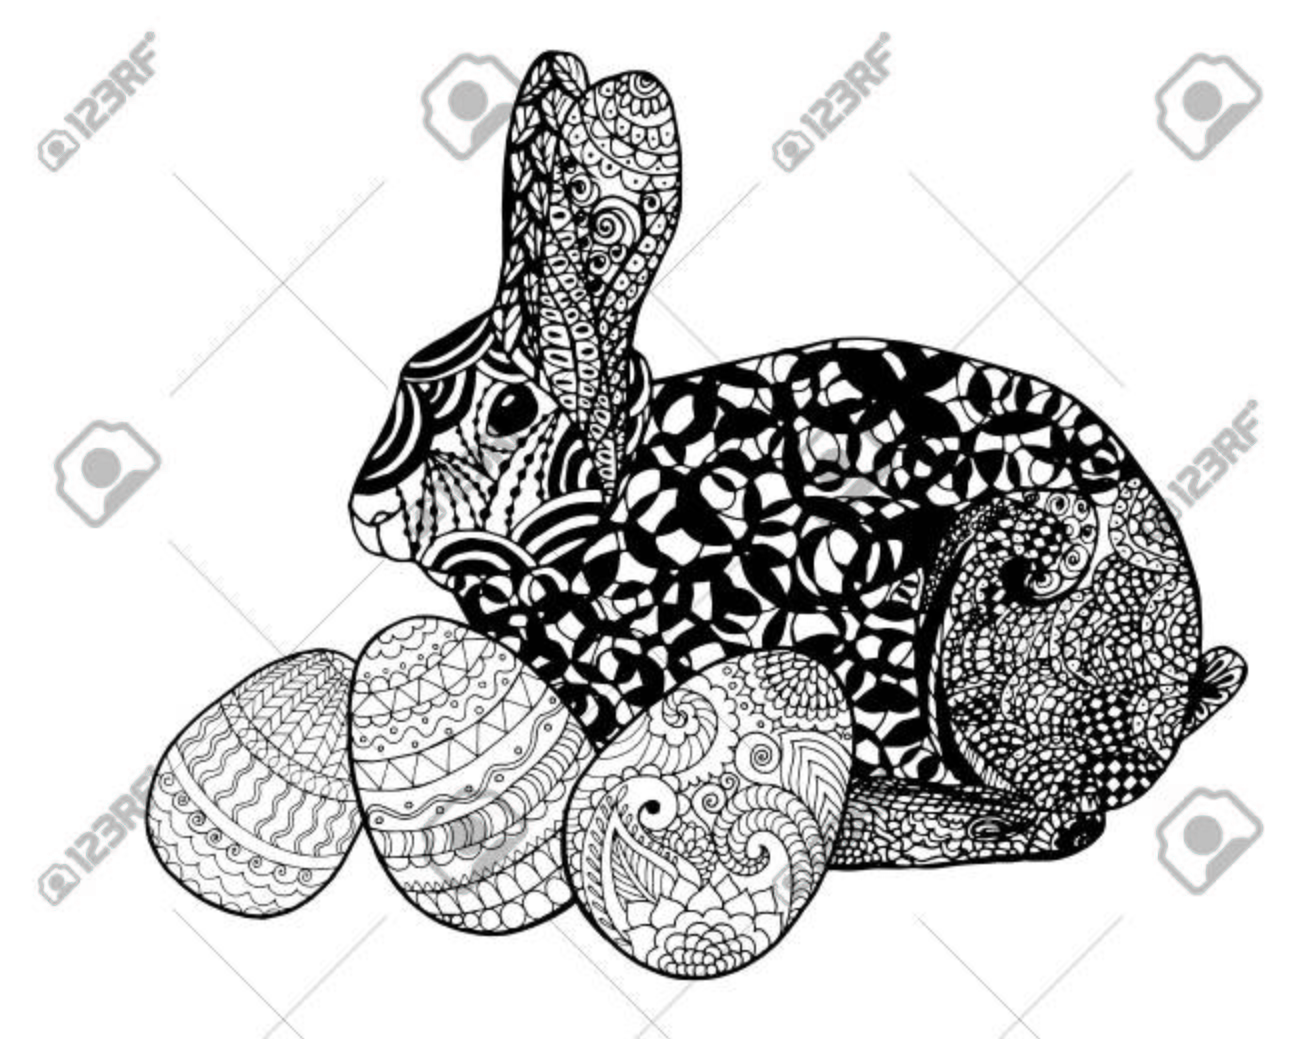 easter bunny rabbit coloring page stock vector 71620049 - Rabbit Coloring Page